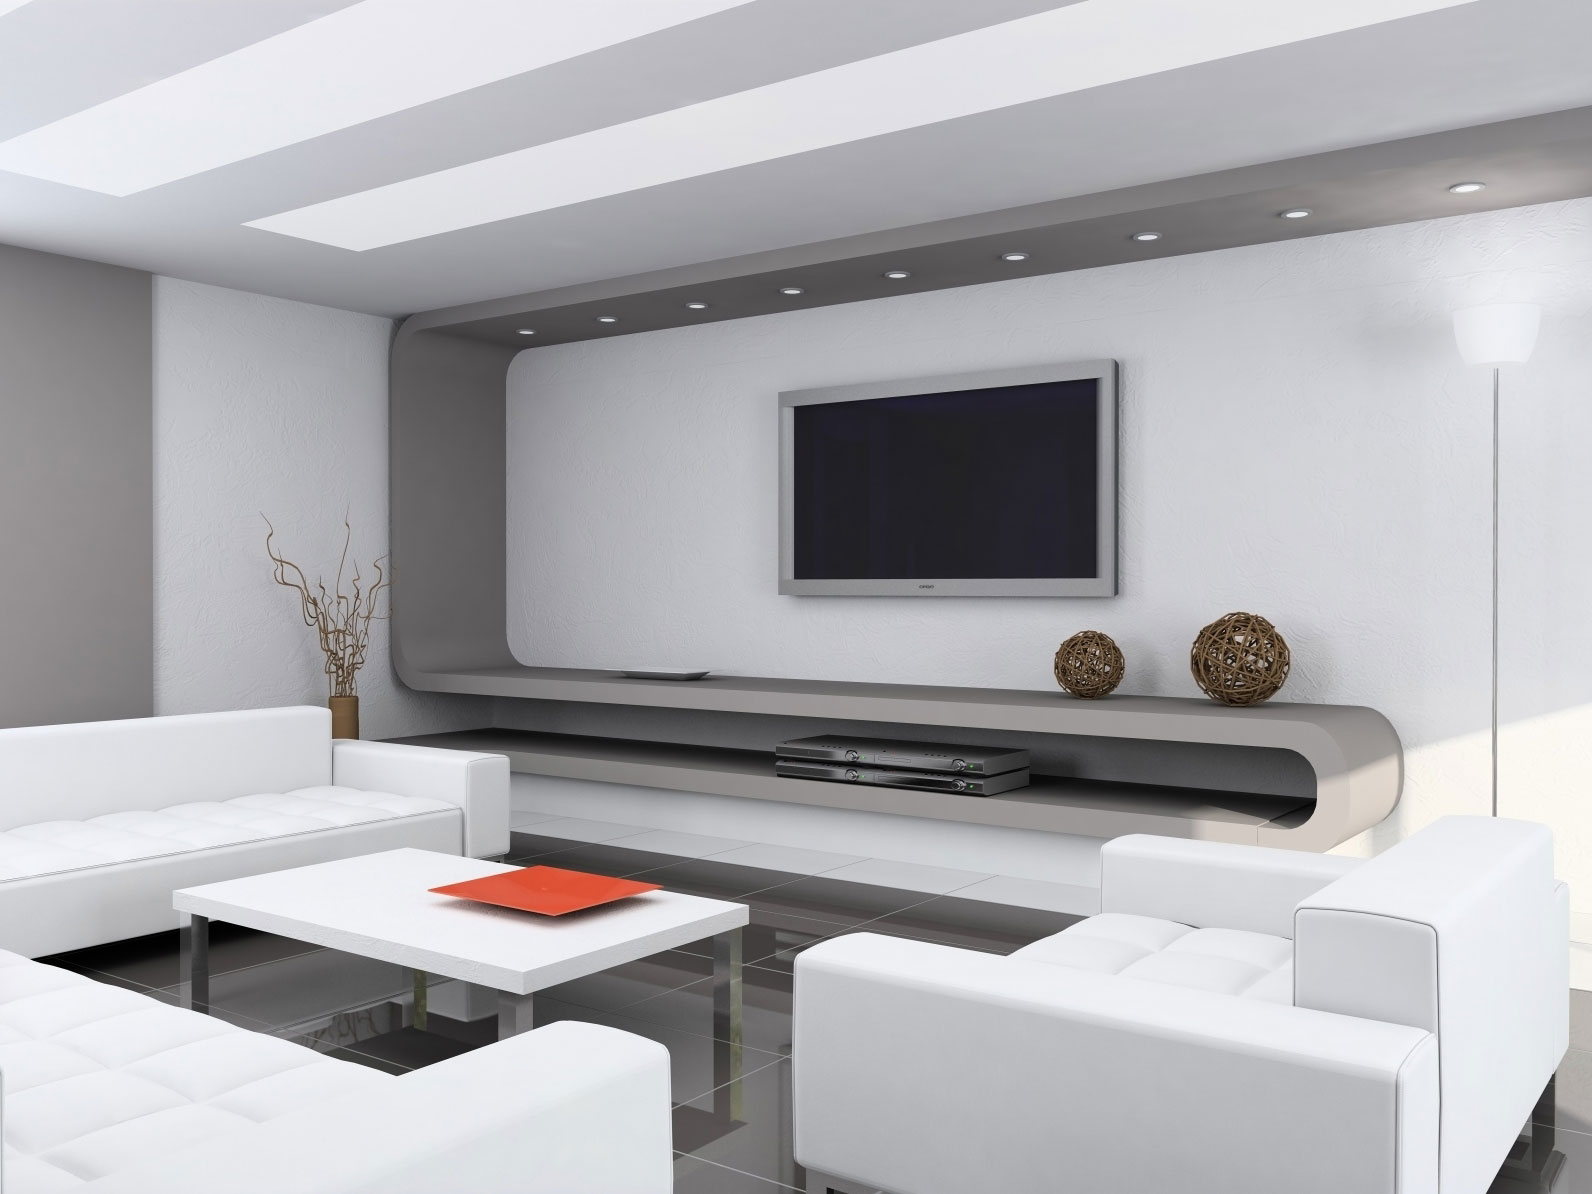 Minimalist Interior Architecture Of Home Design With Minimalist Interior  Design